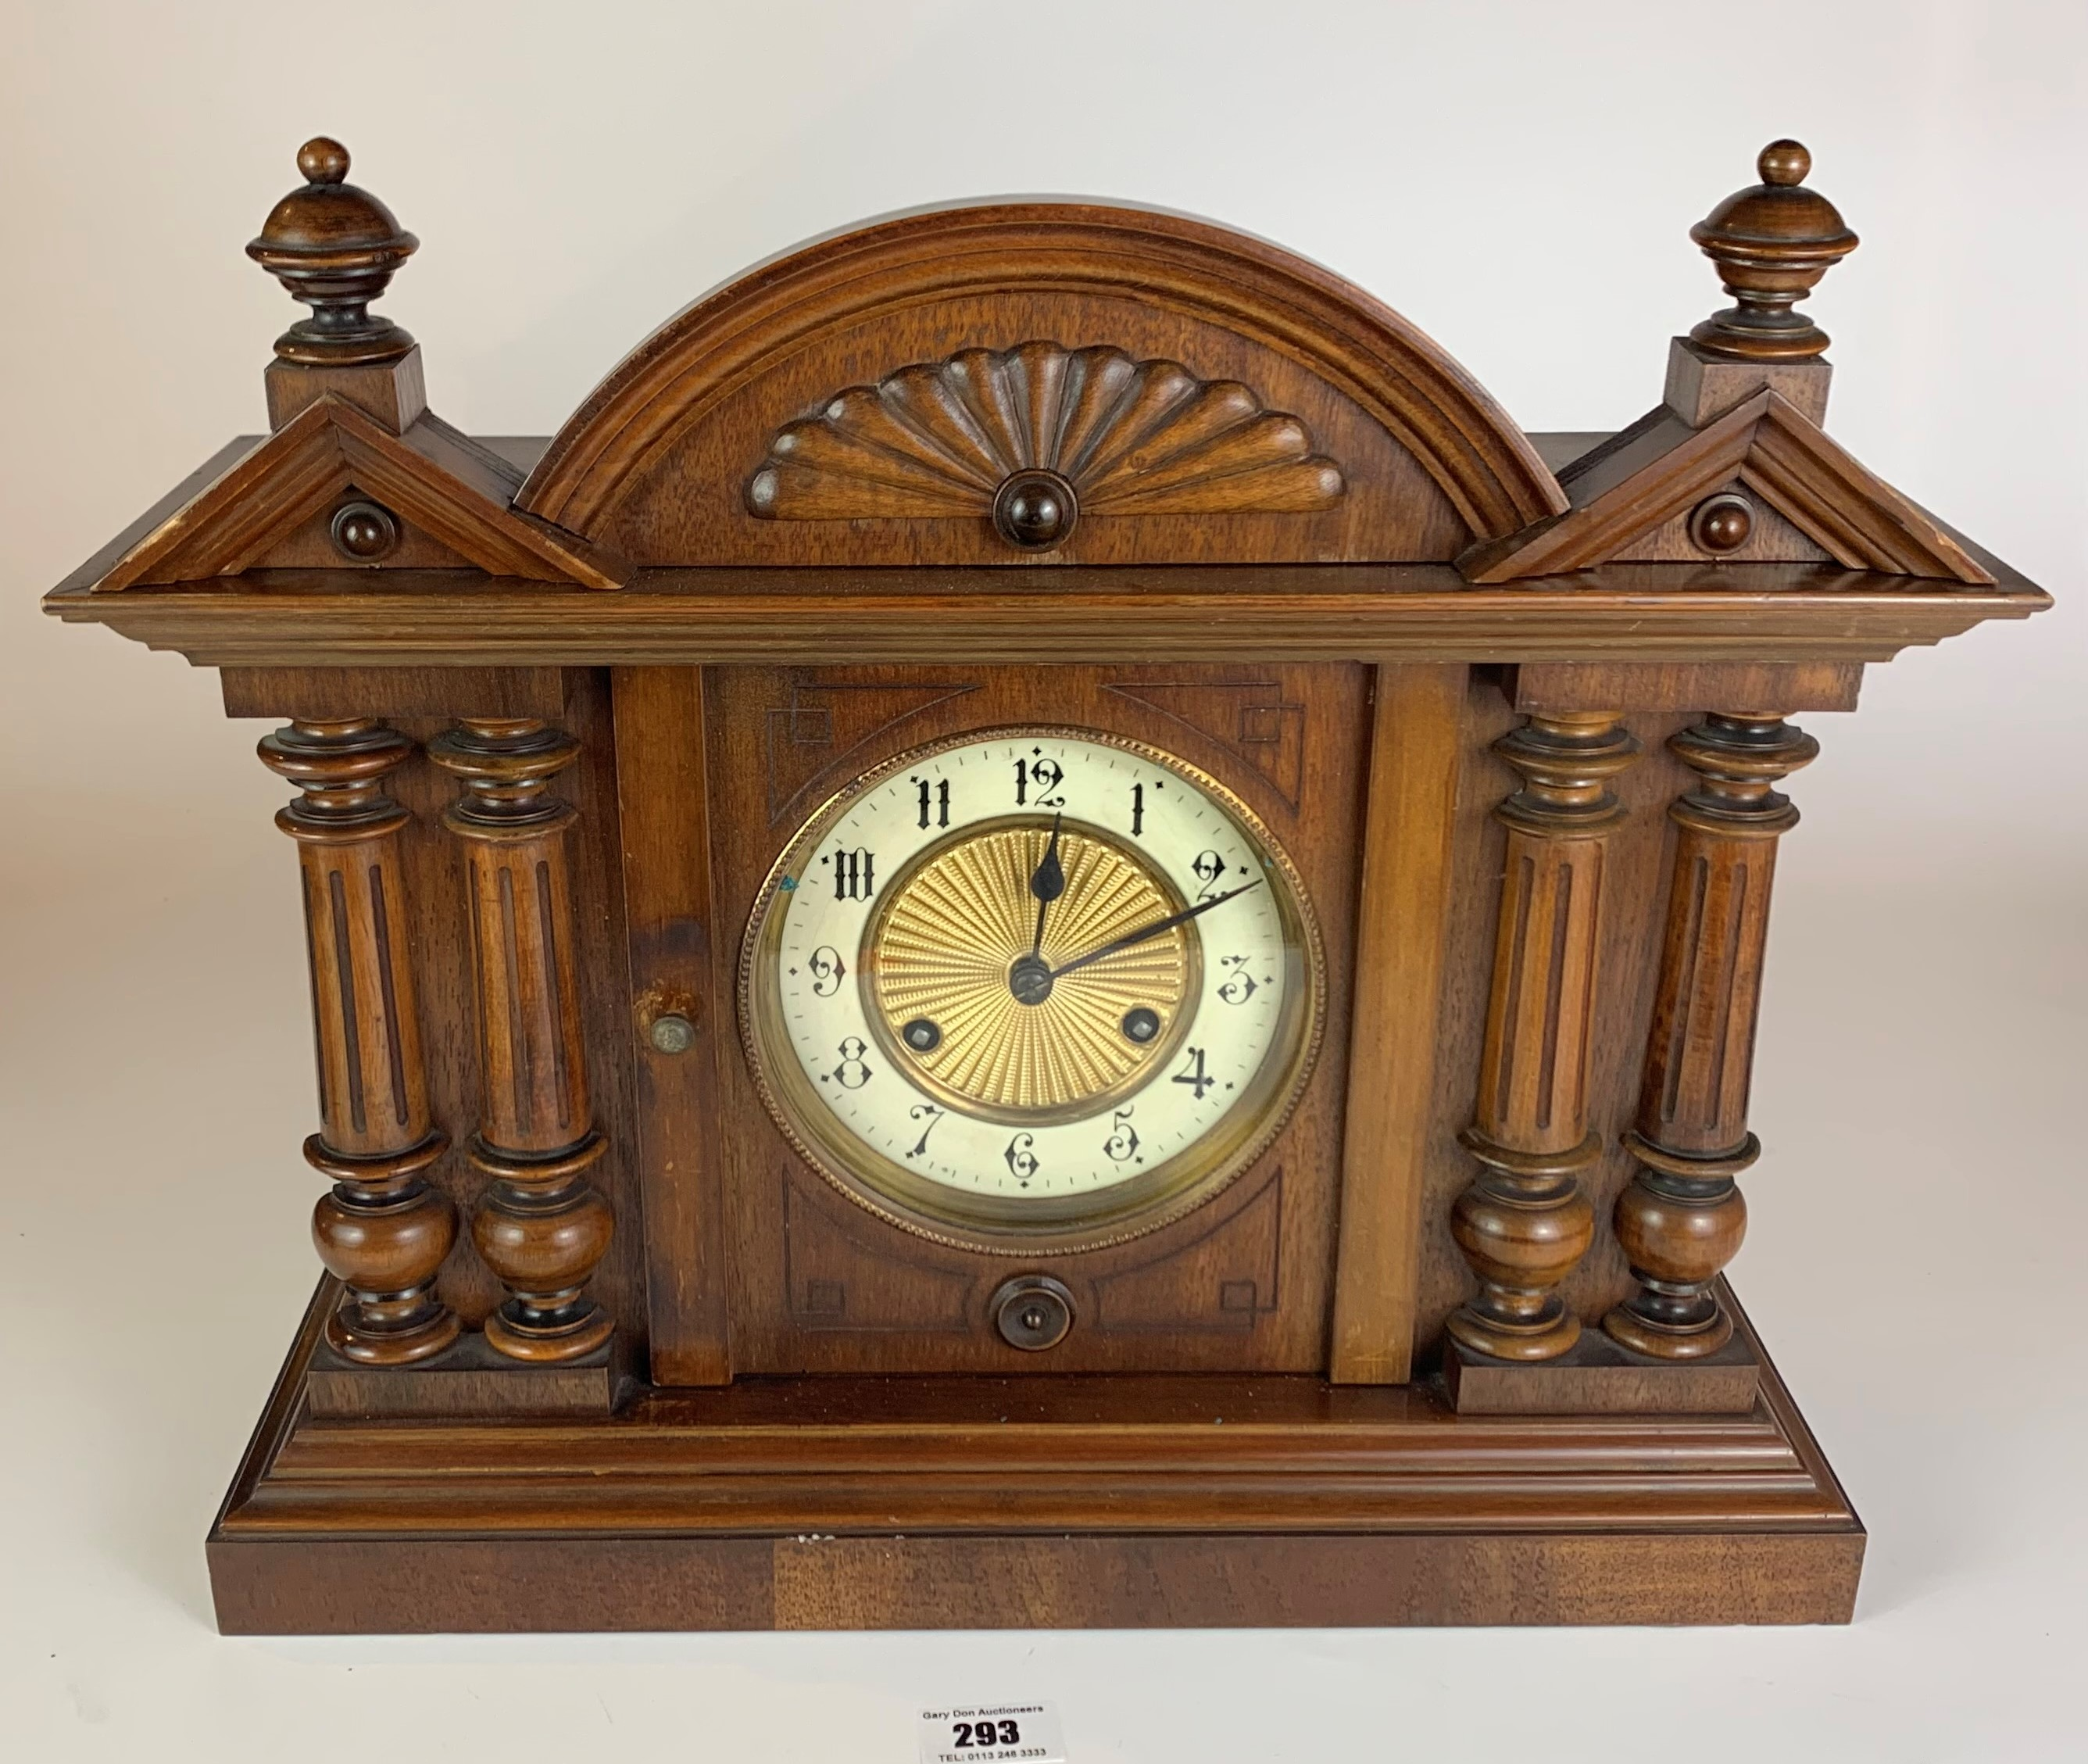 """Antique mantle clock, 14.5"""" high, 16.5"""" wide - Image 2 of 6"""